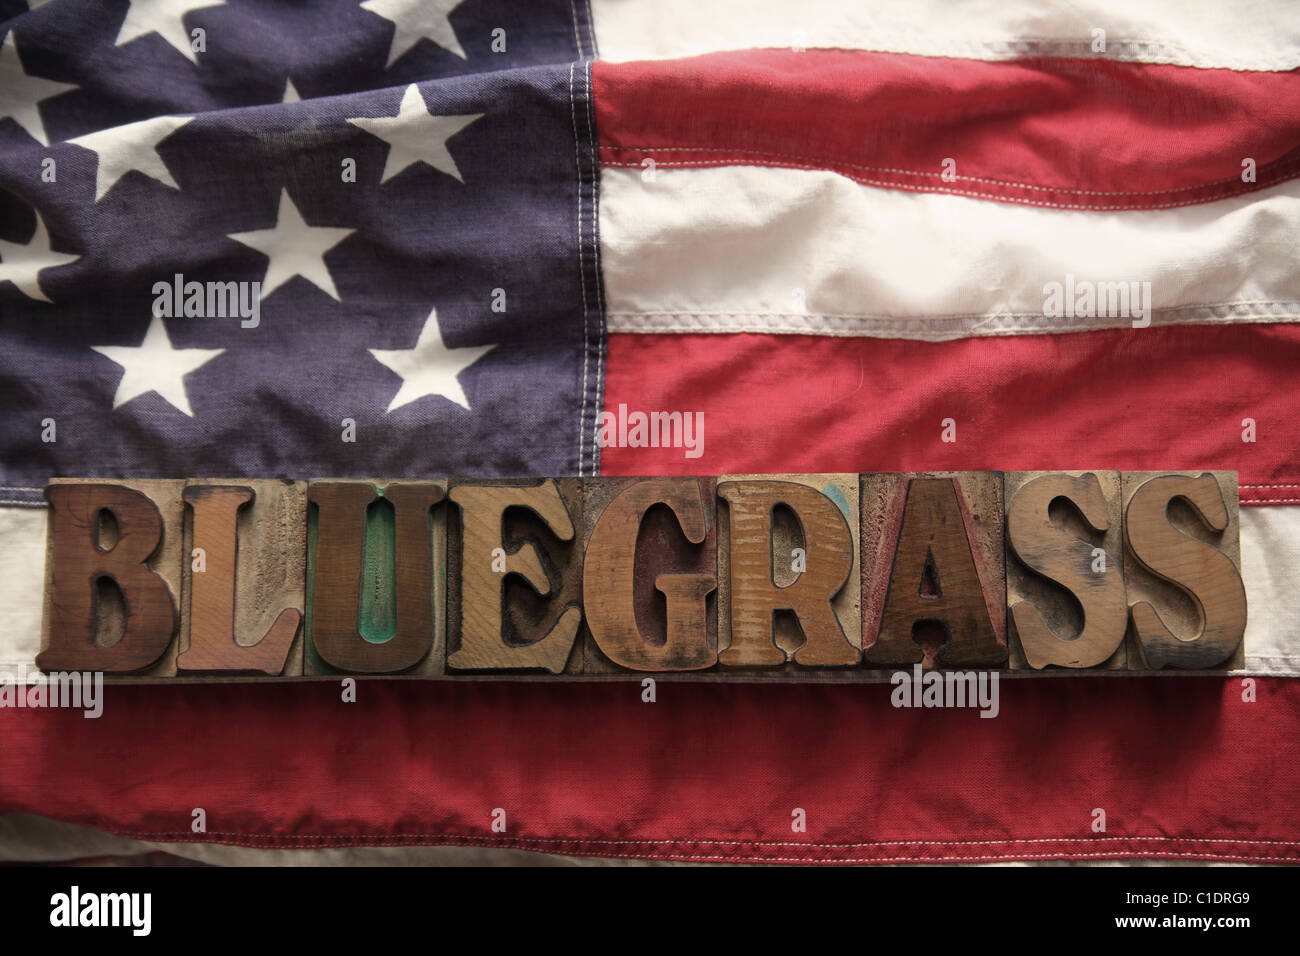 an American flag with the word bluegrass in old wood type - Stock Image